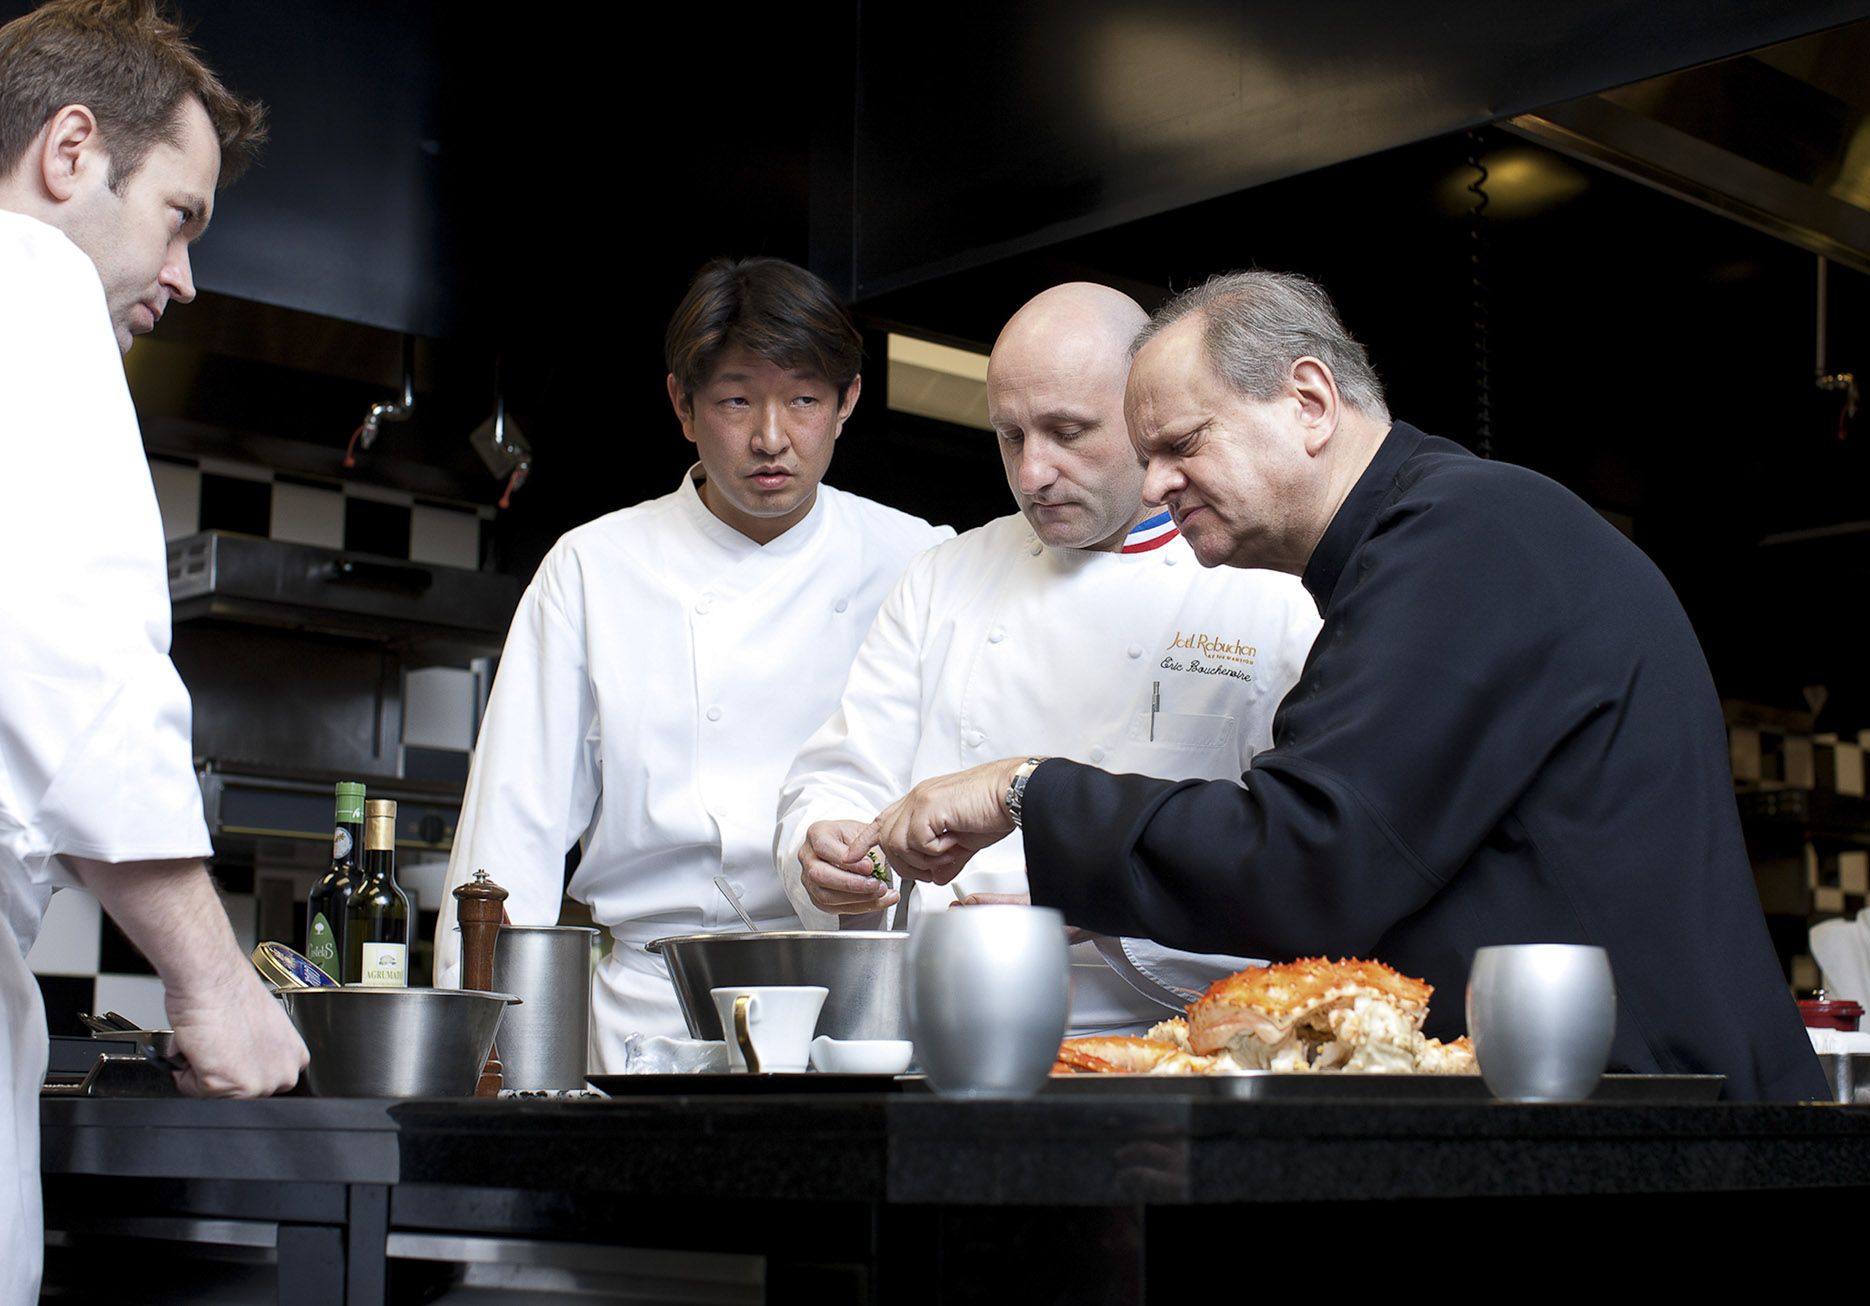 jeff-green-joelrobuchon-kitchen